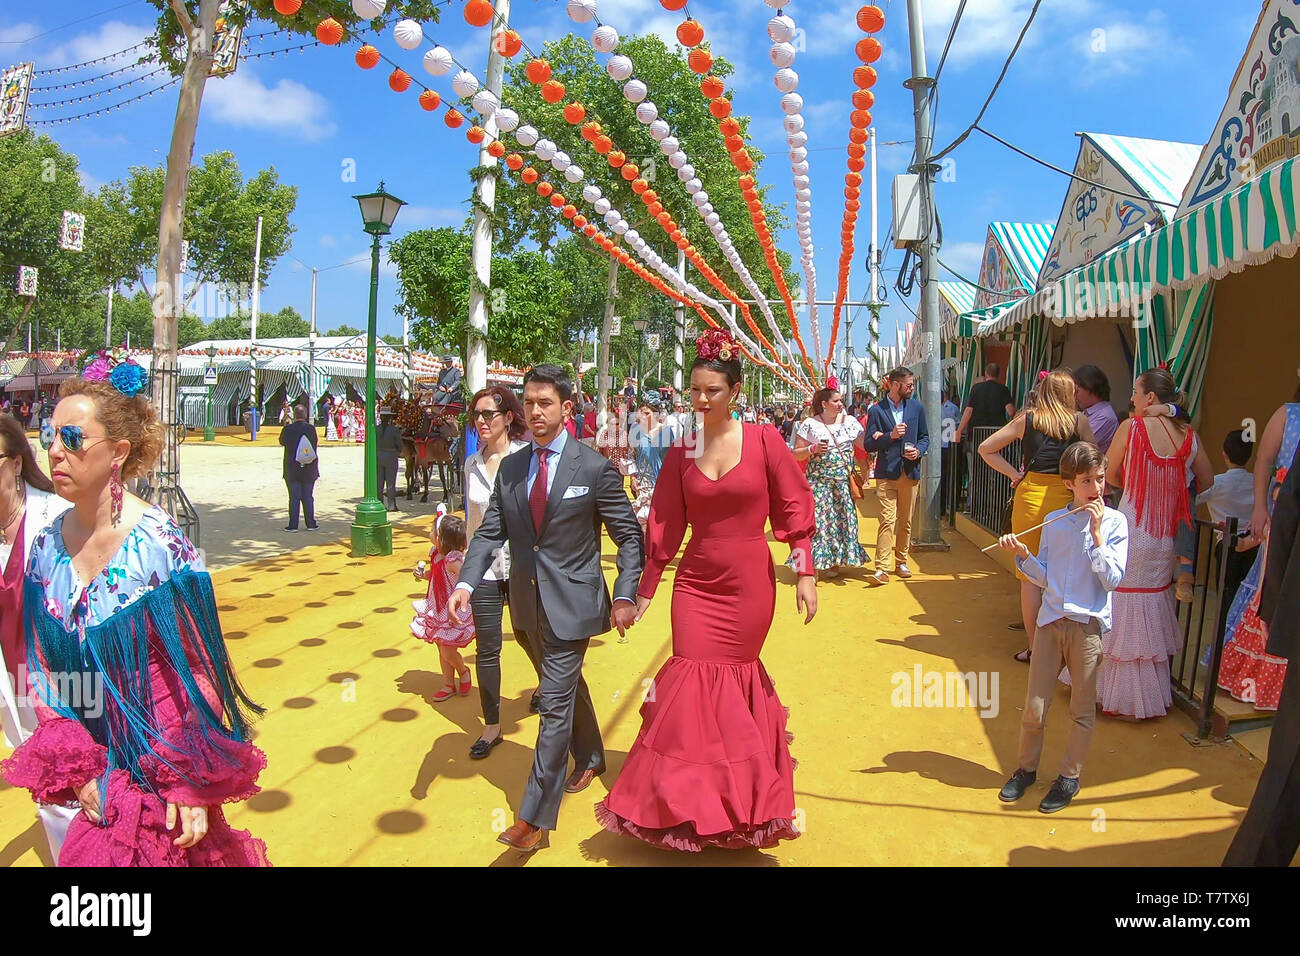 Seville, Spain - May 5, 2019: People walking by  the April Fair of Seville on May, 5, 2019 in Seville, Spain - Stock Image